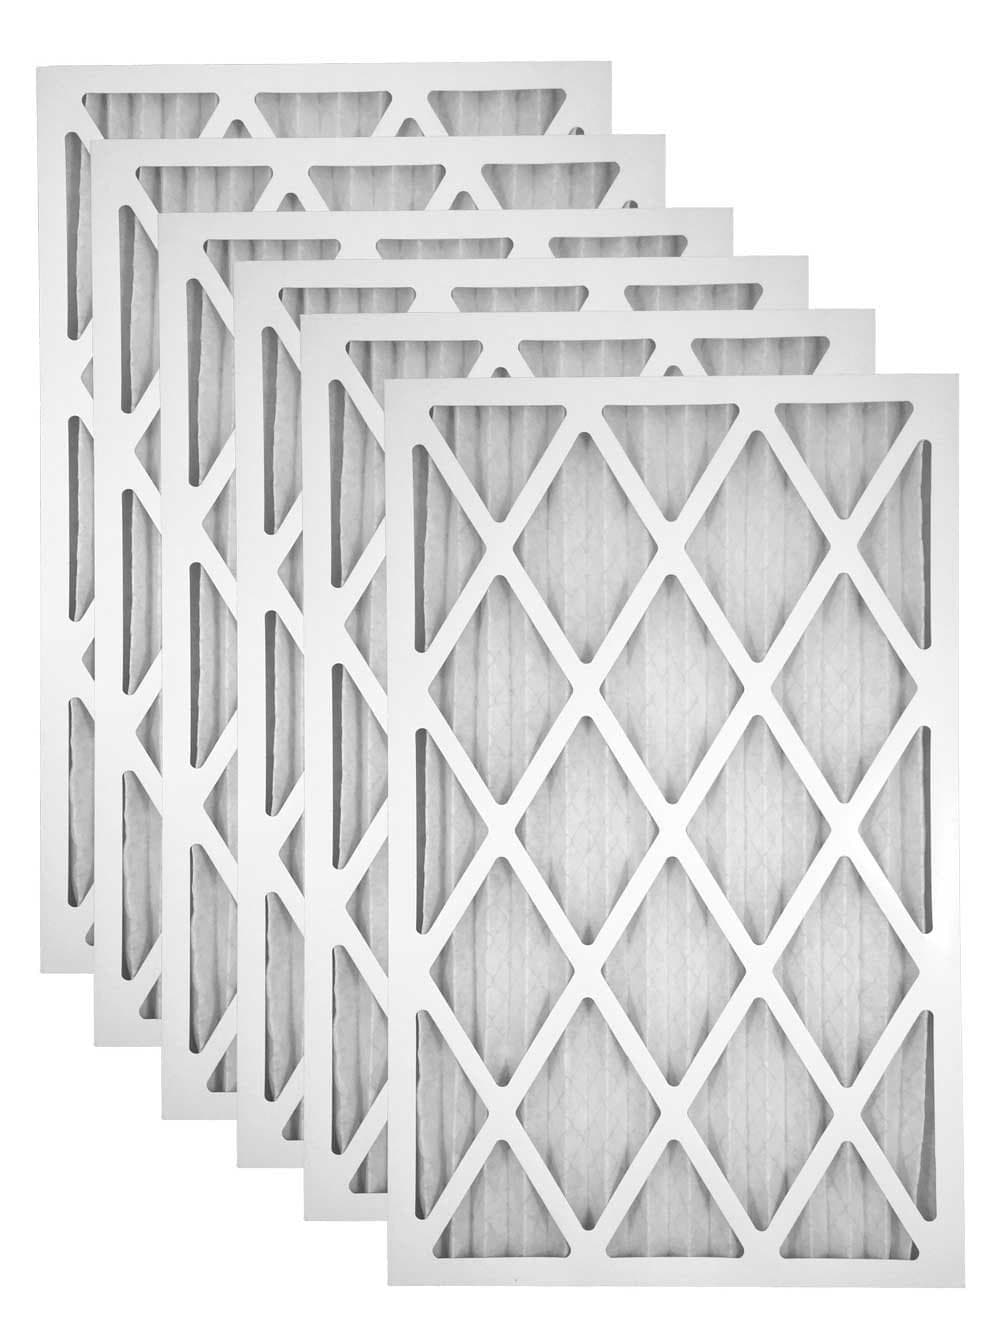 14x24x1 Merv 13 AC Furnace Filter - Case of 6